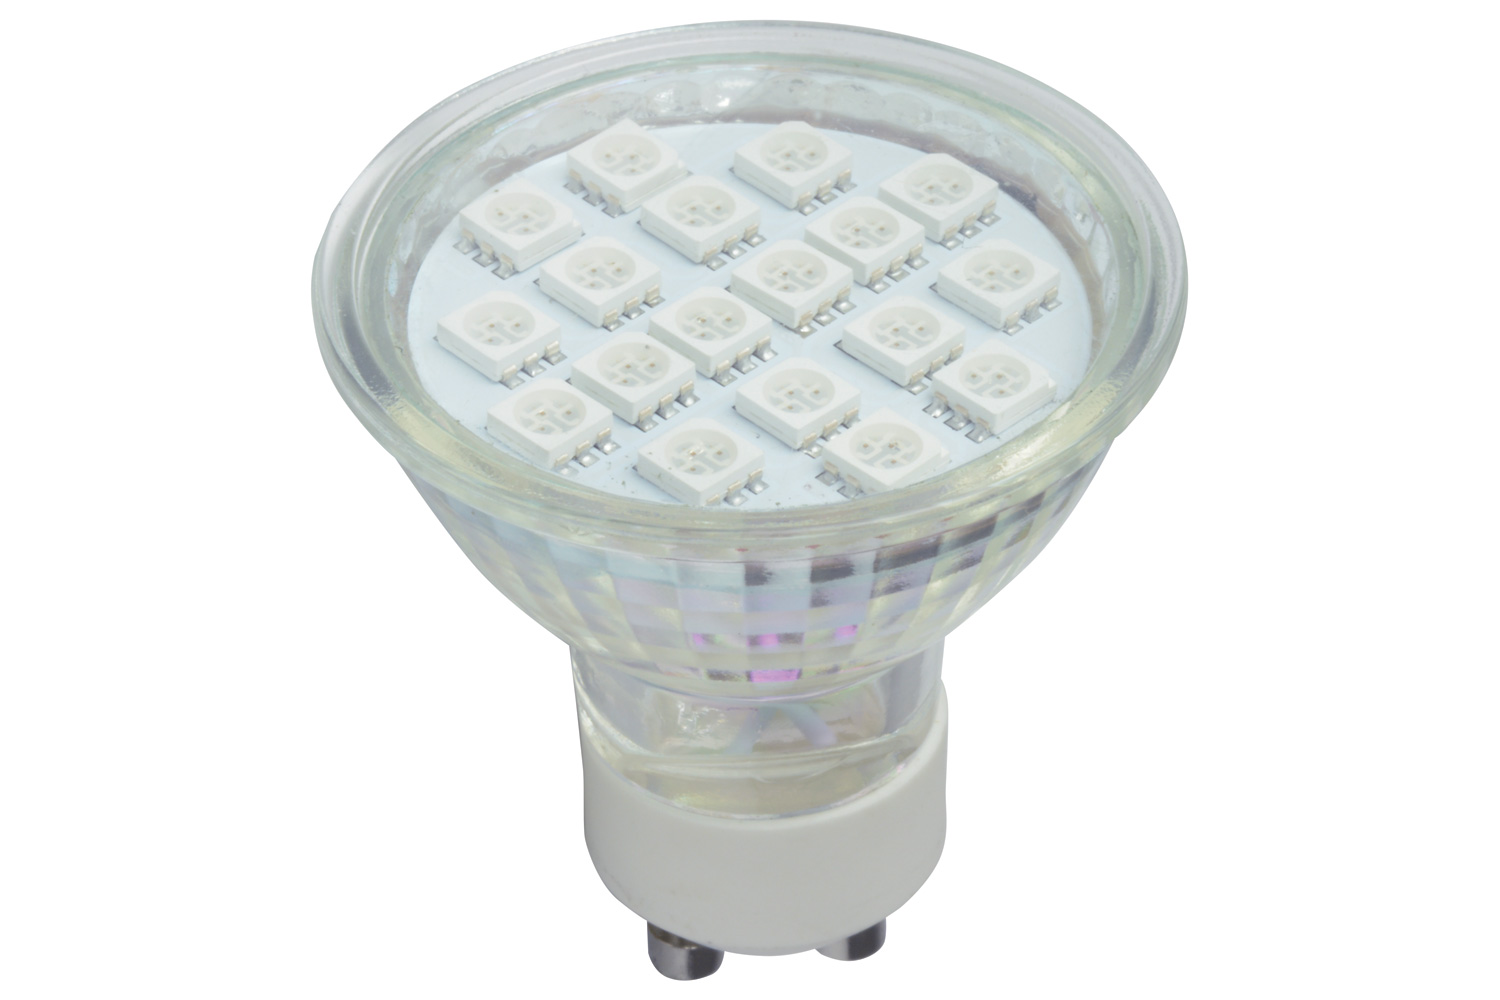 lyyt GU10 18 LED lamp - yellow